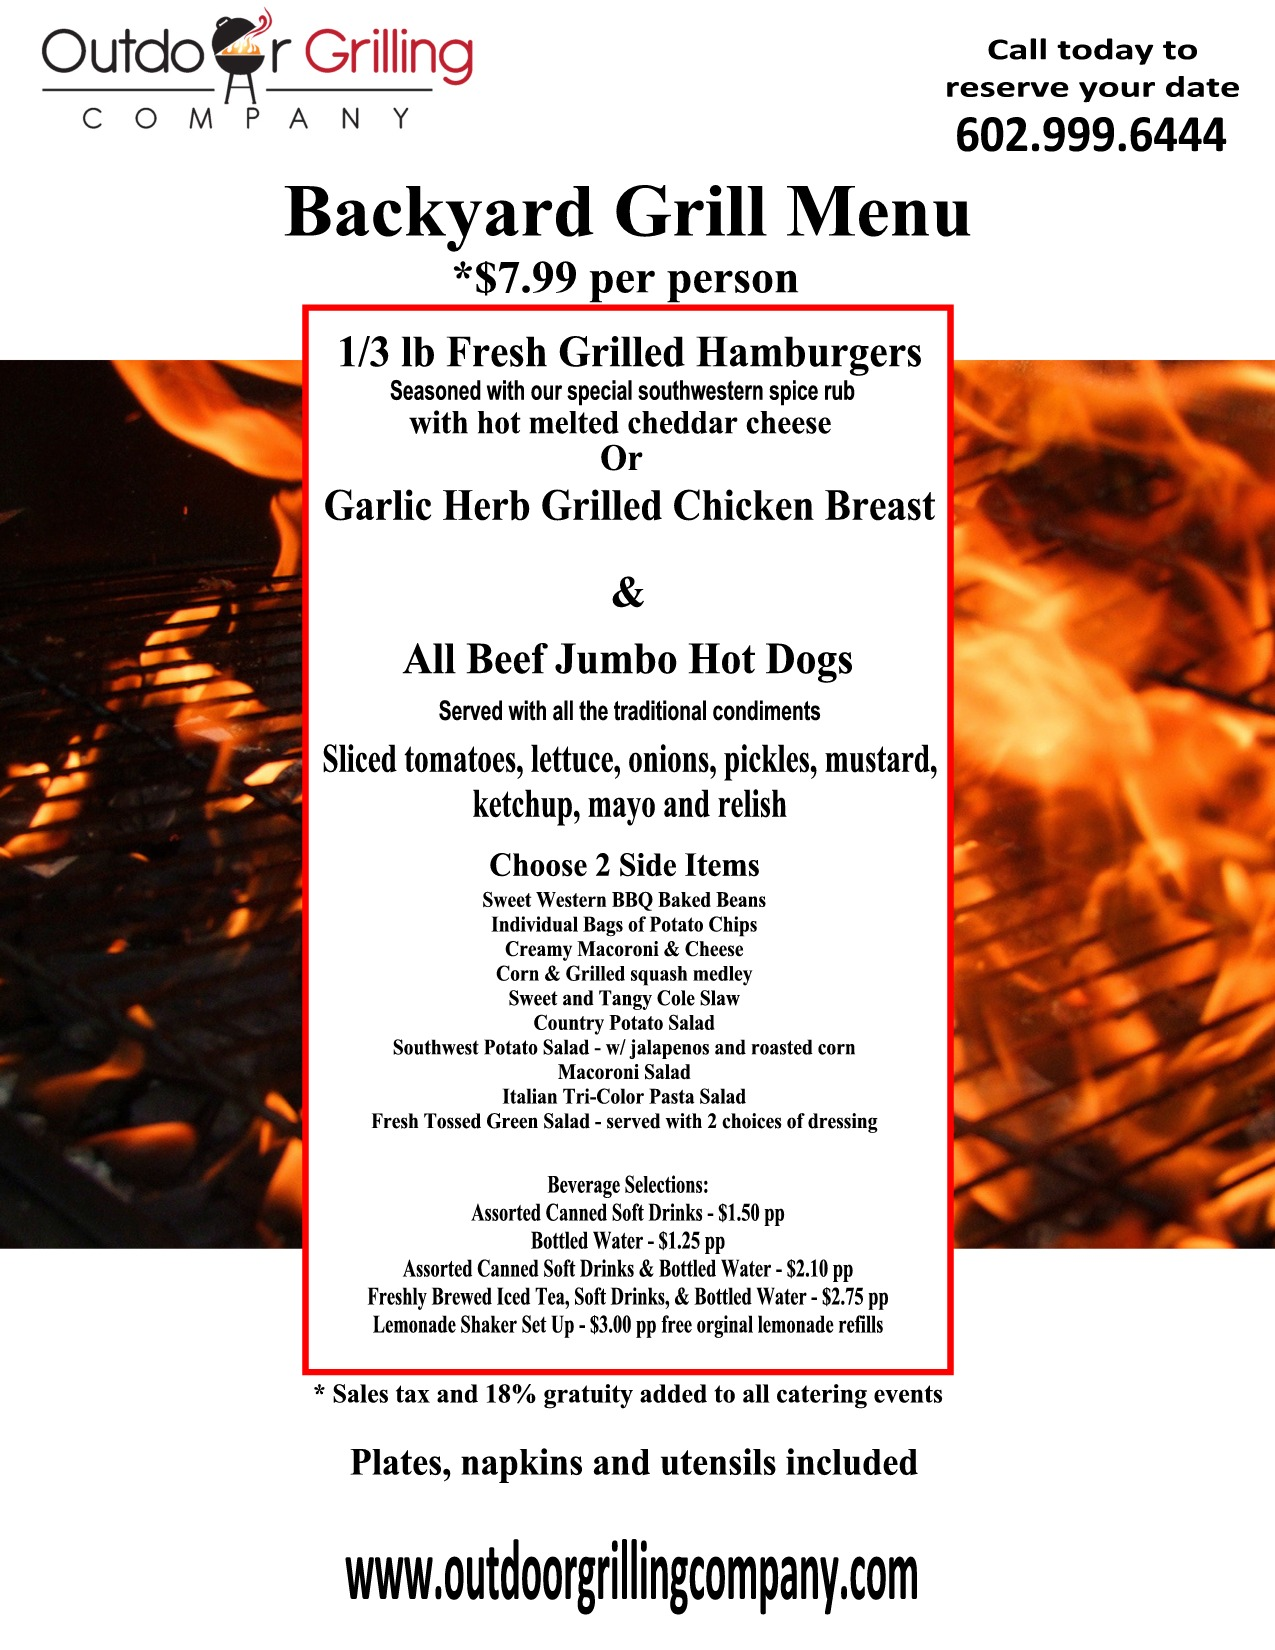 Attractive OGC Bckyard Grill Menu Gallery